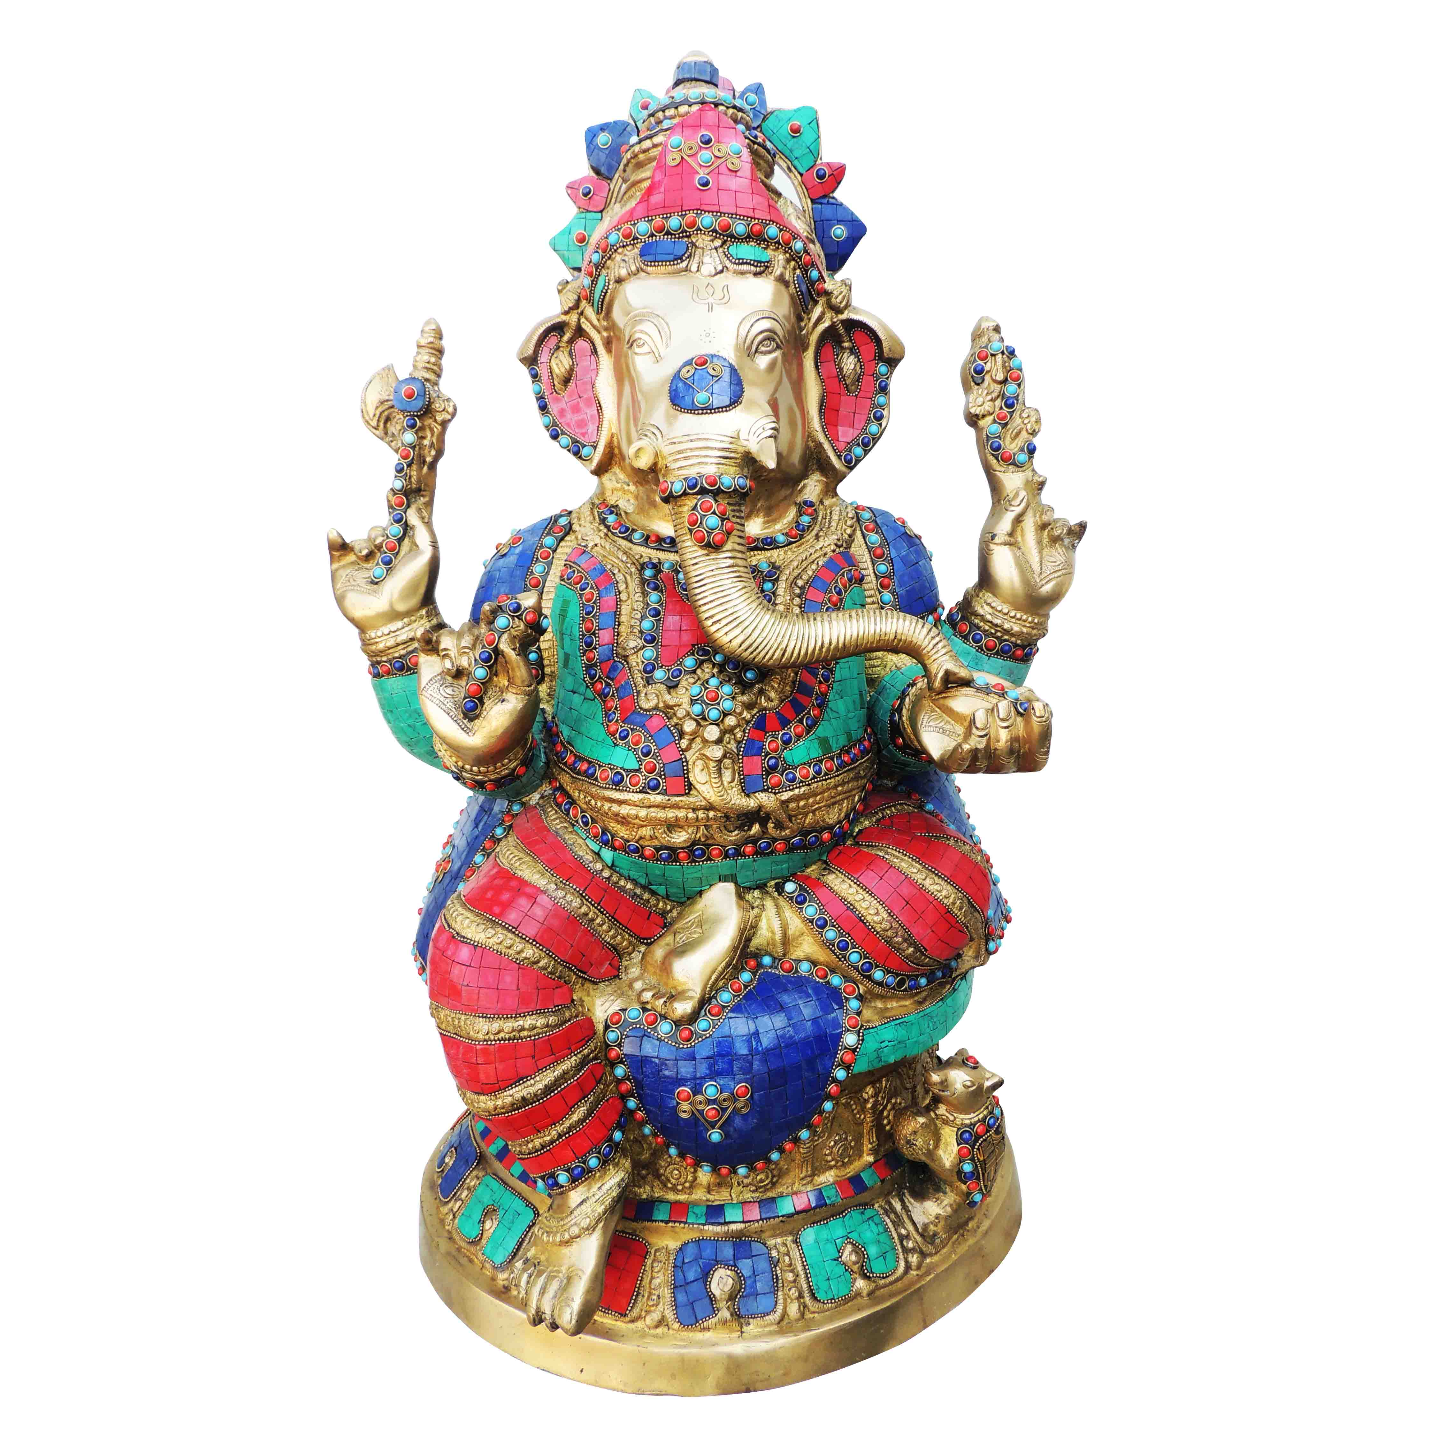 Brass Ganesh Idol Murti Statue with Turquoise  Coral stone work - 27.2 Inch  (BS609)